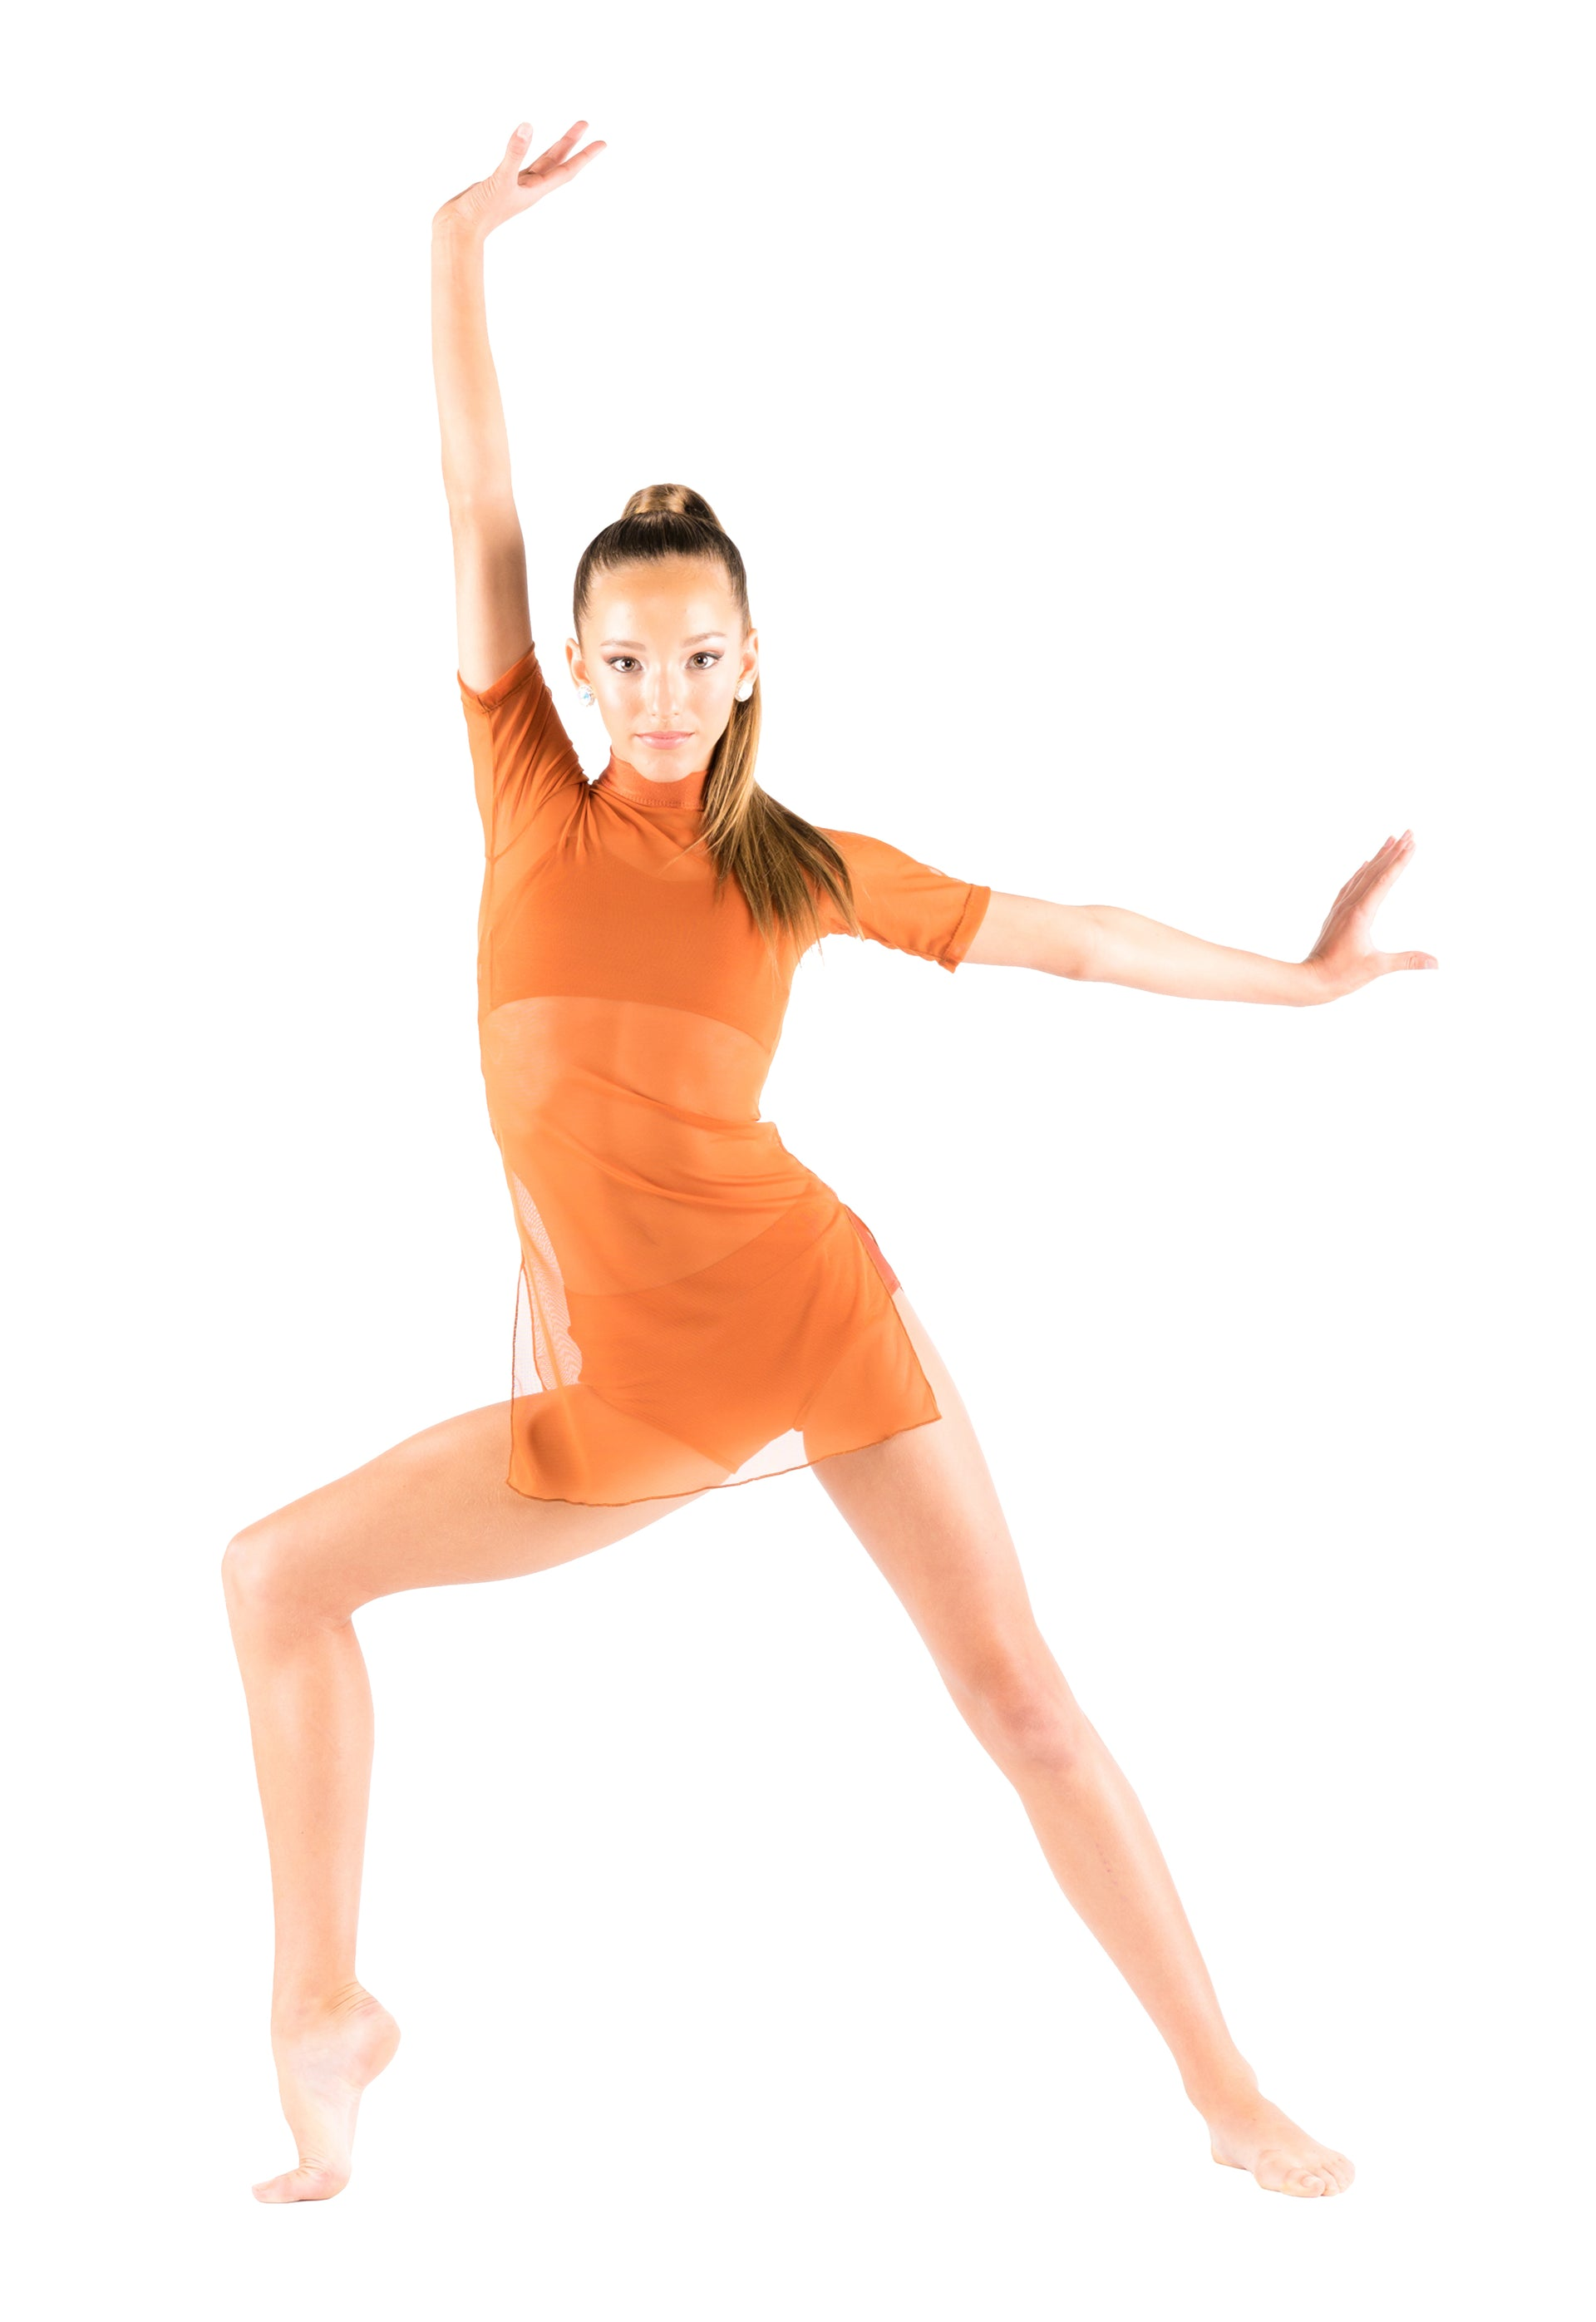 Modern Day Slip Dress - Patrick J Design.com, dance wear, costum costumes, dance